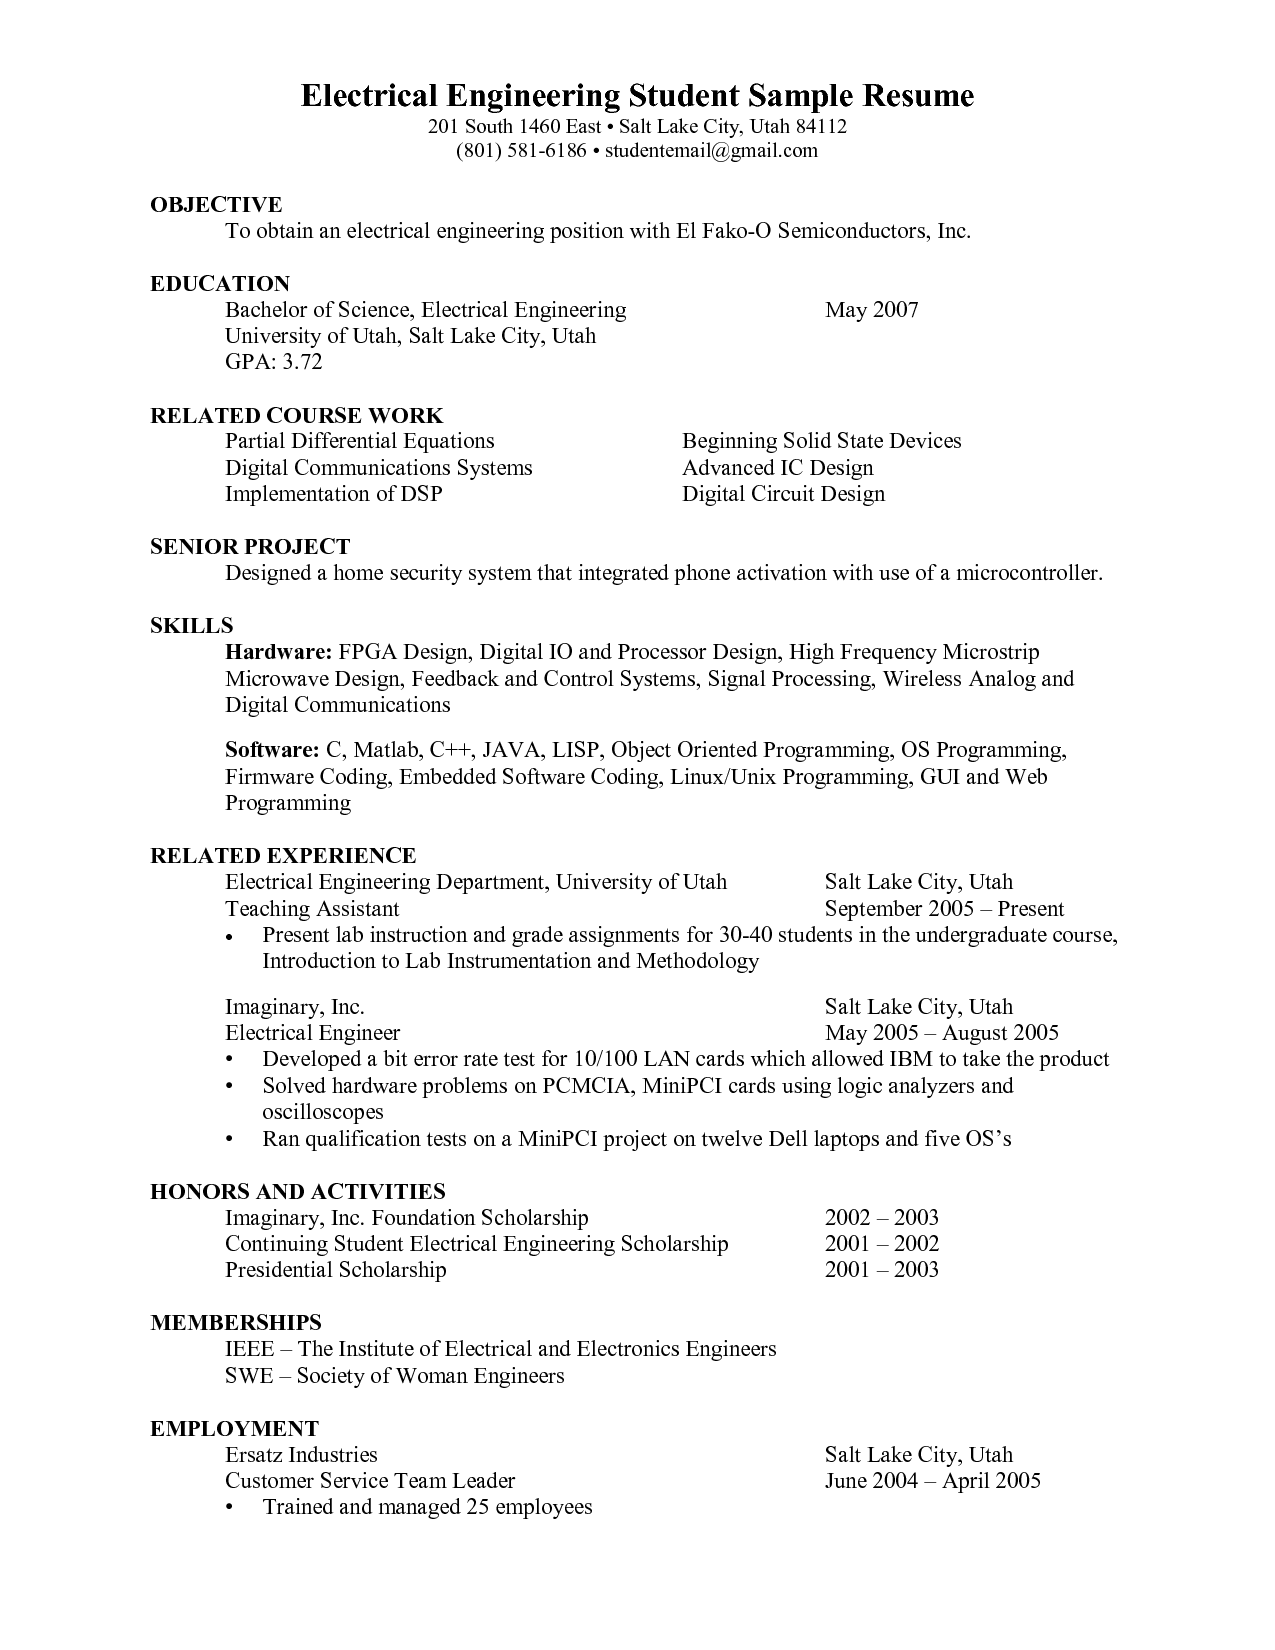 99 Resume Examples For Engineering Students New Mechanical